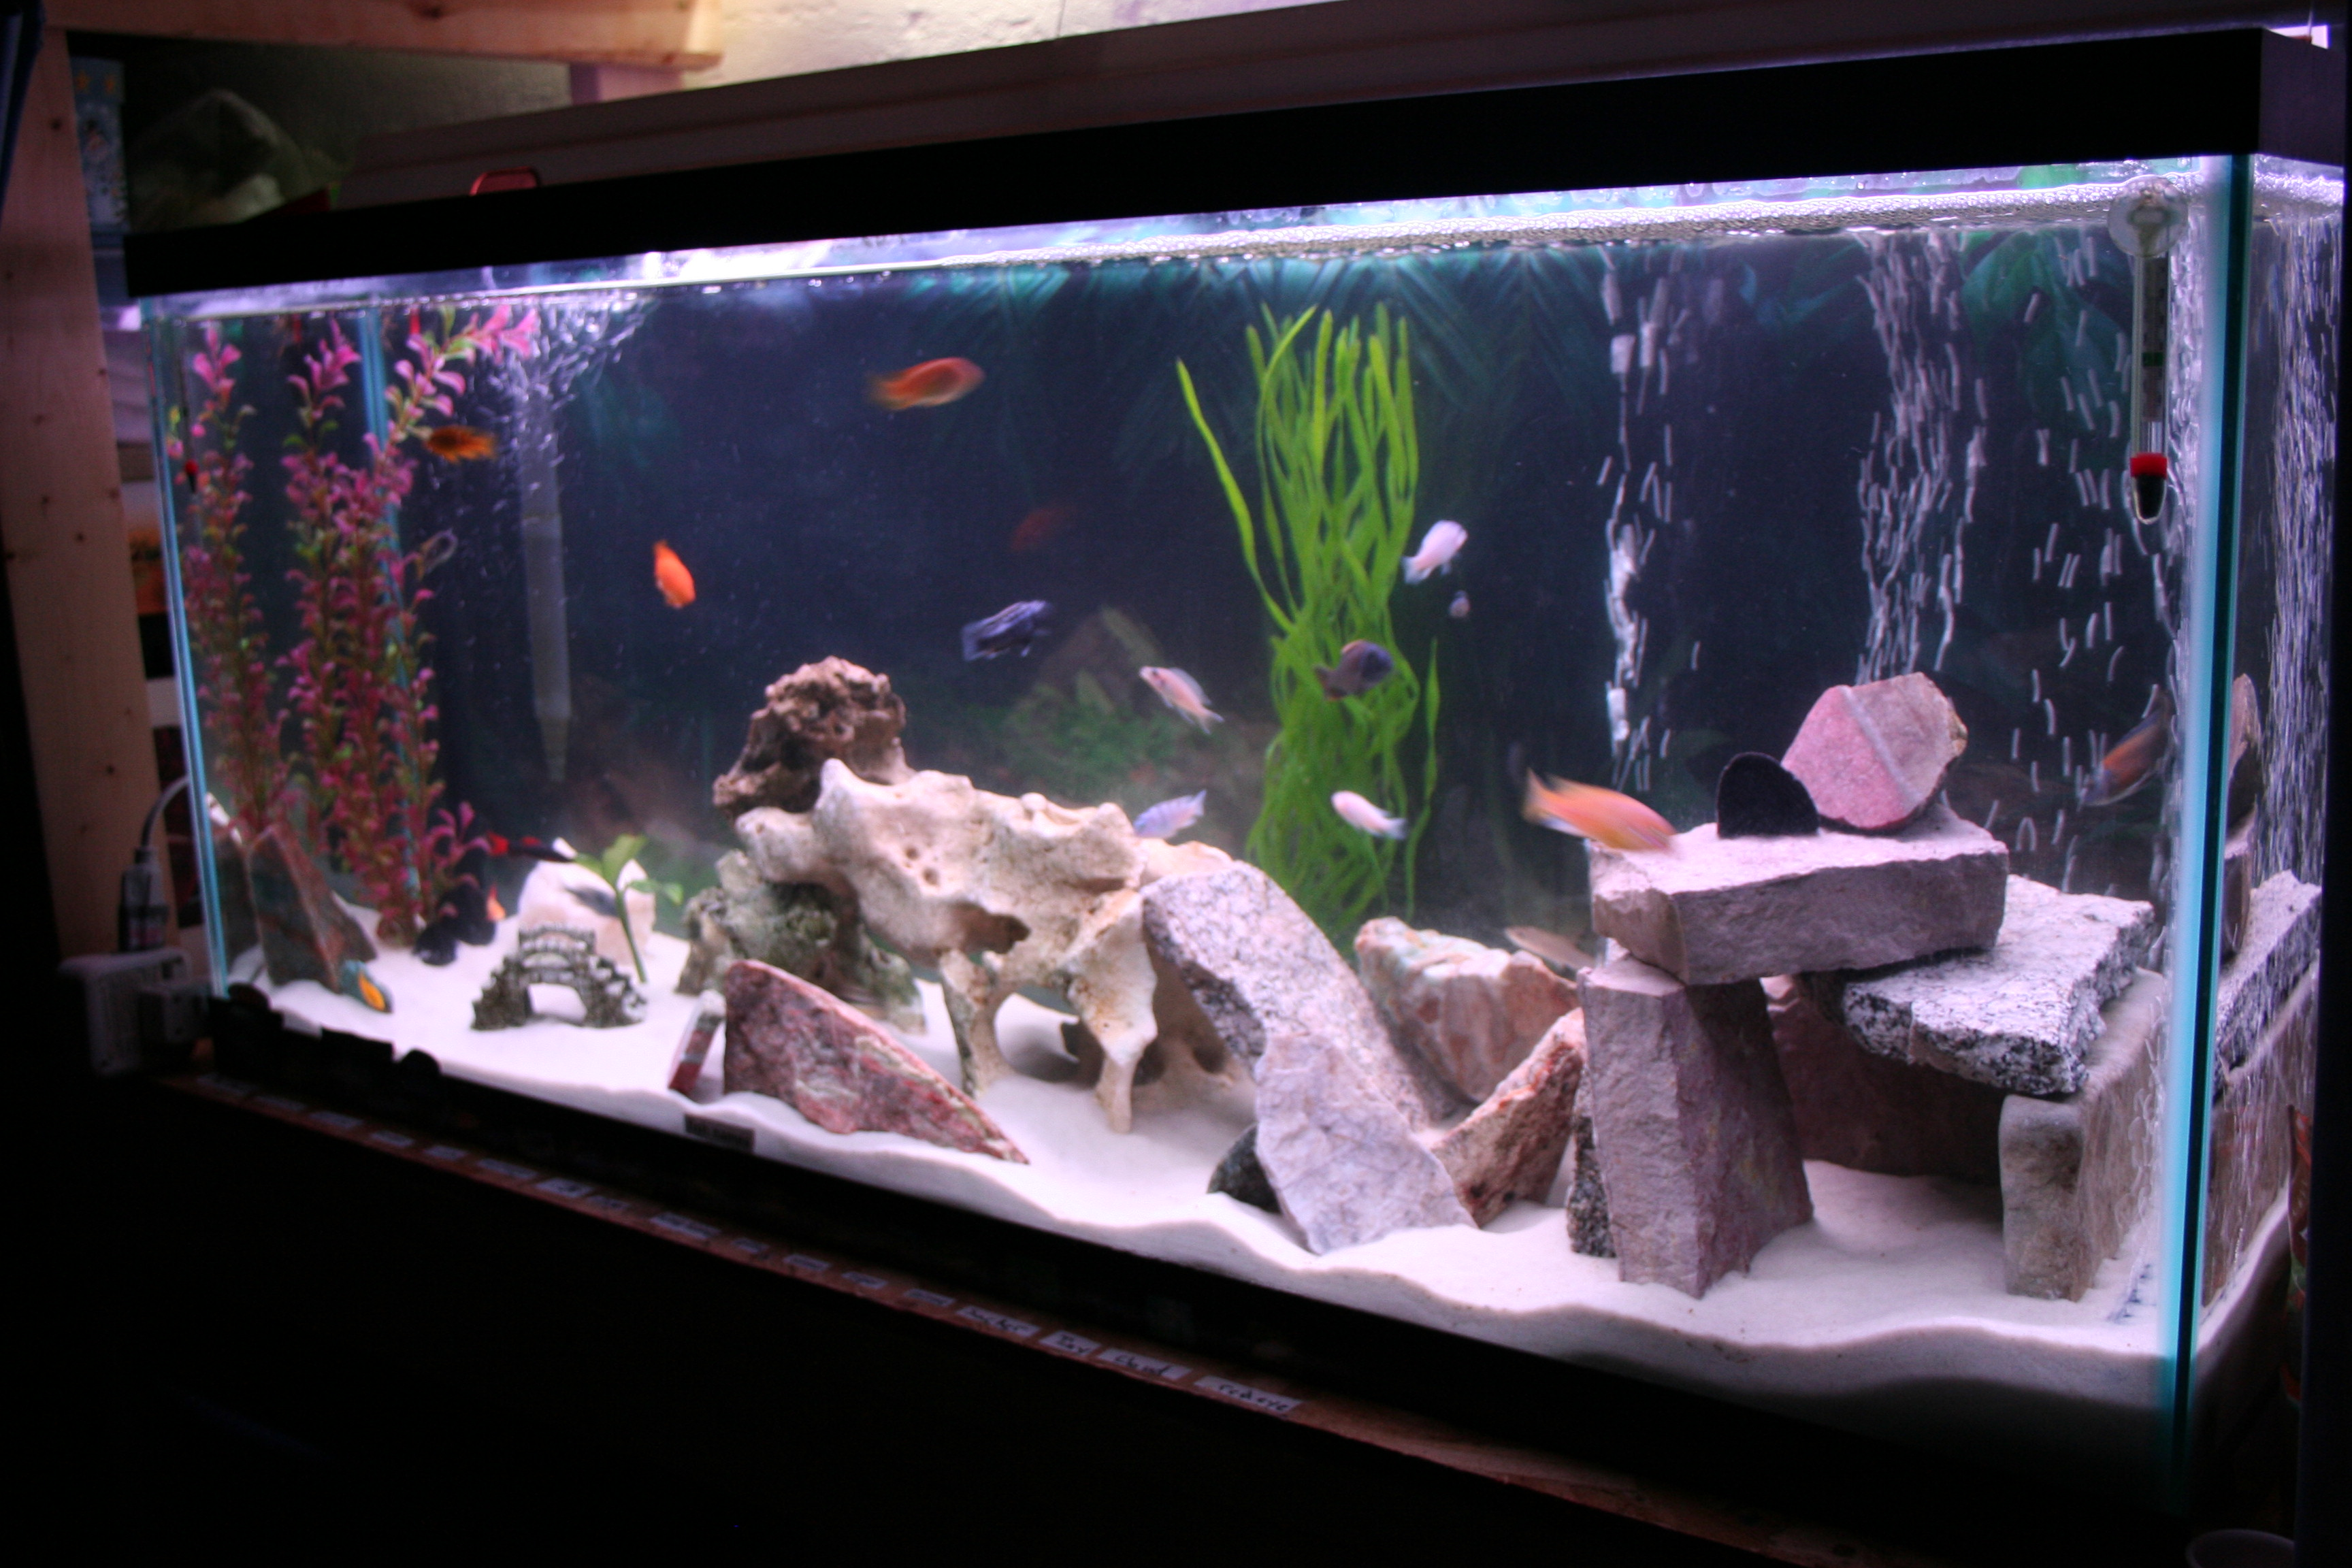 Fish tank decorations for cichlids aquarium rock cave for Aquarium house decoration